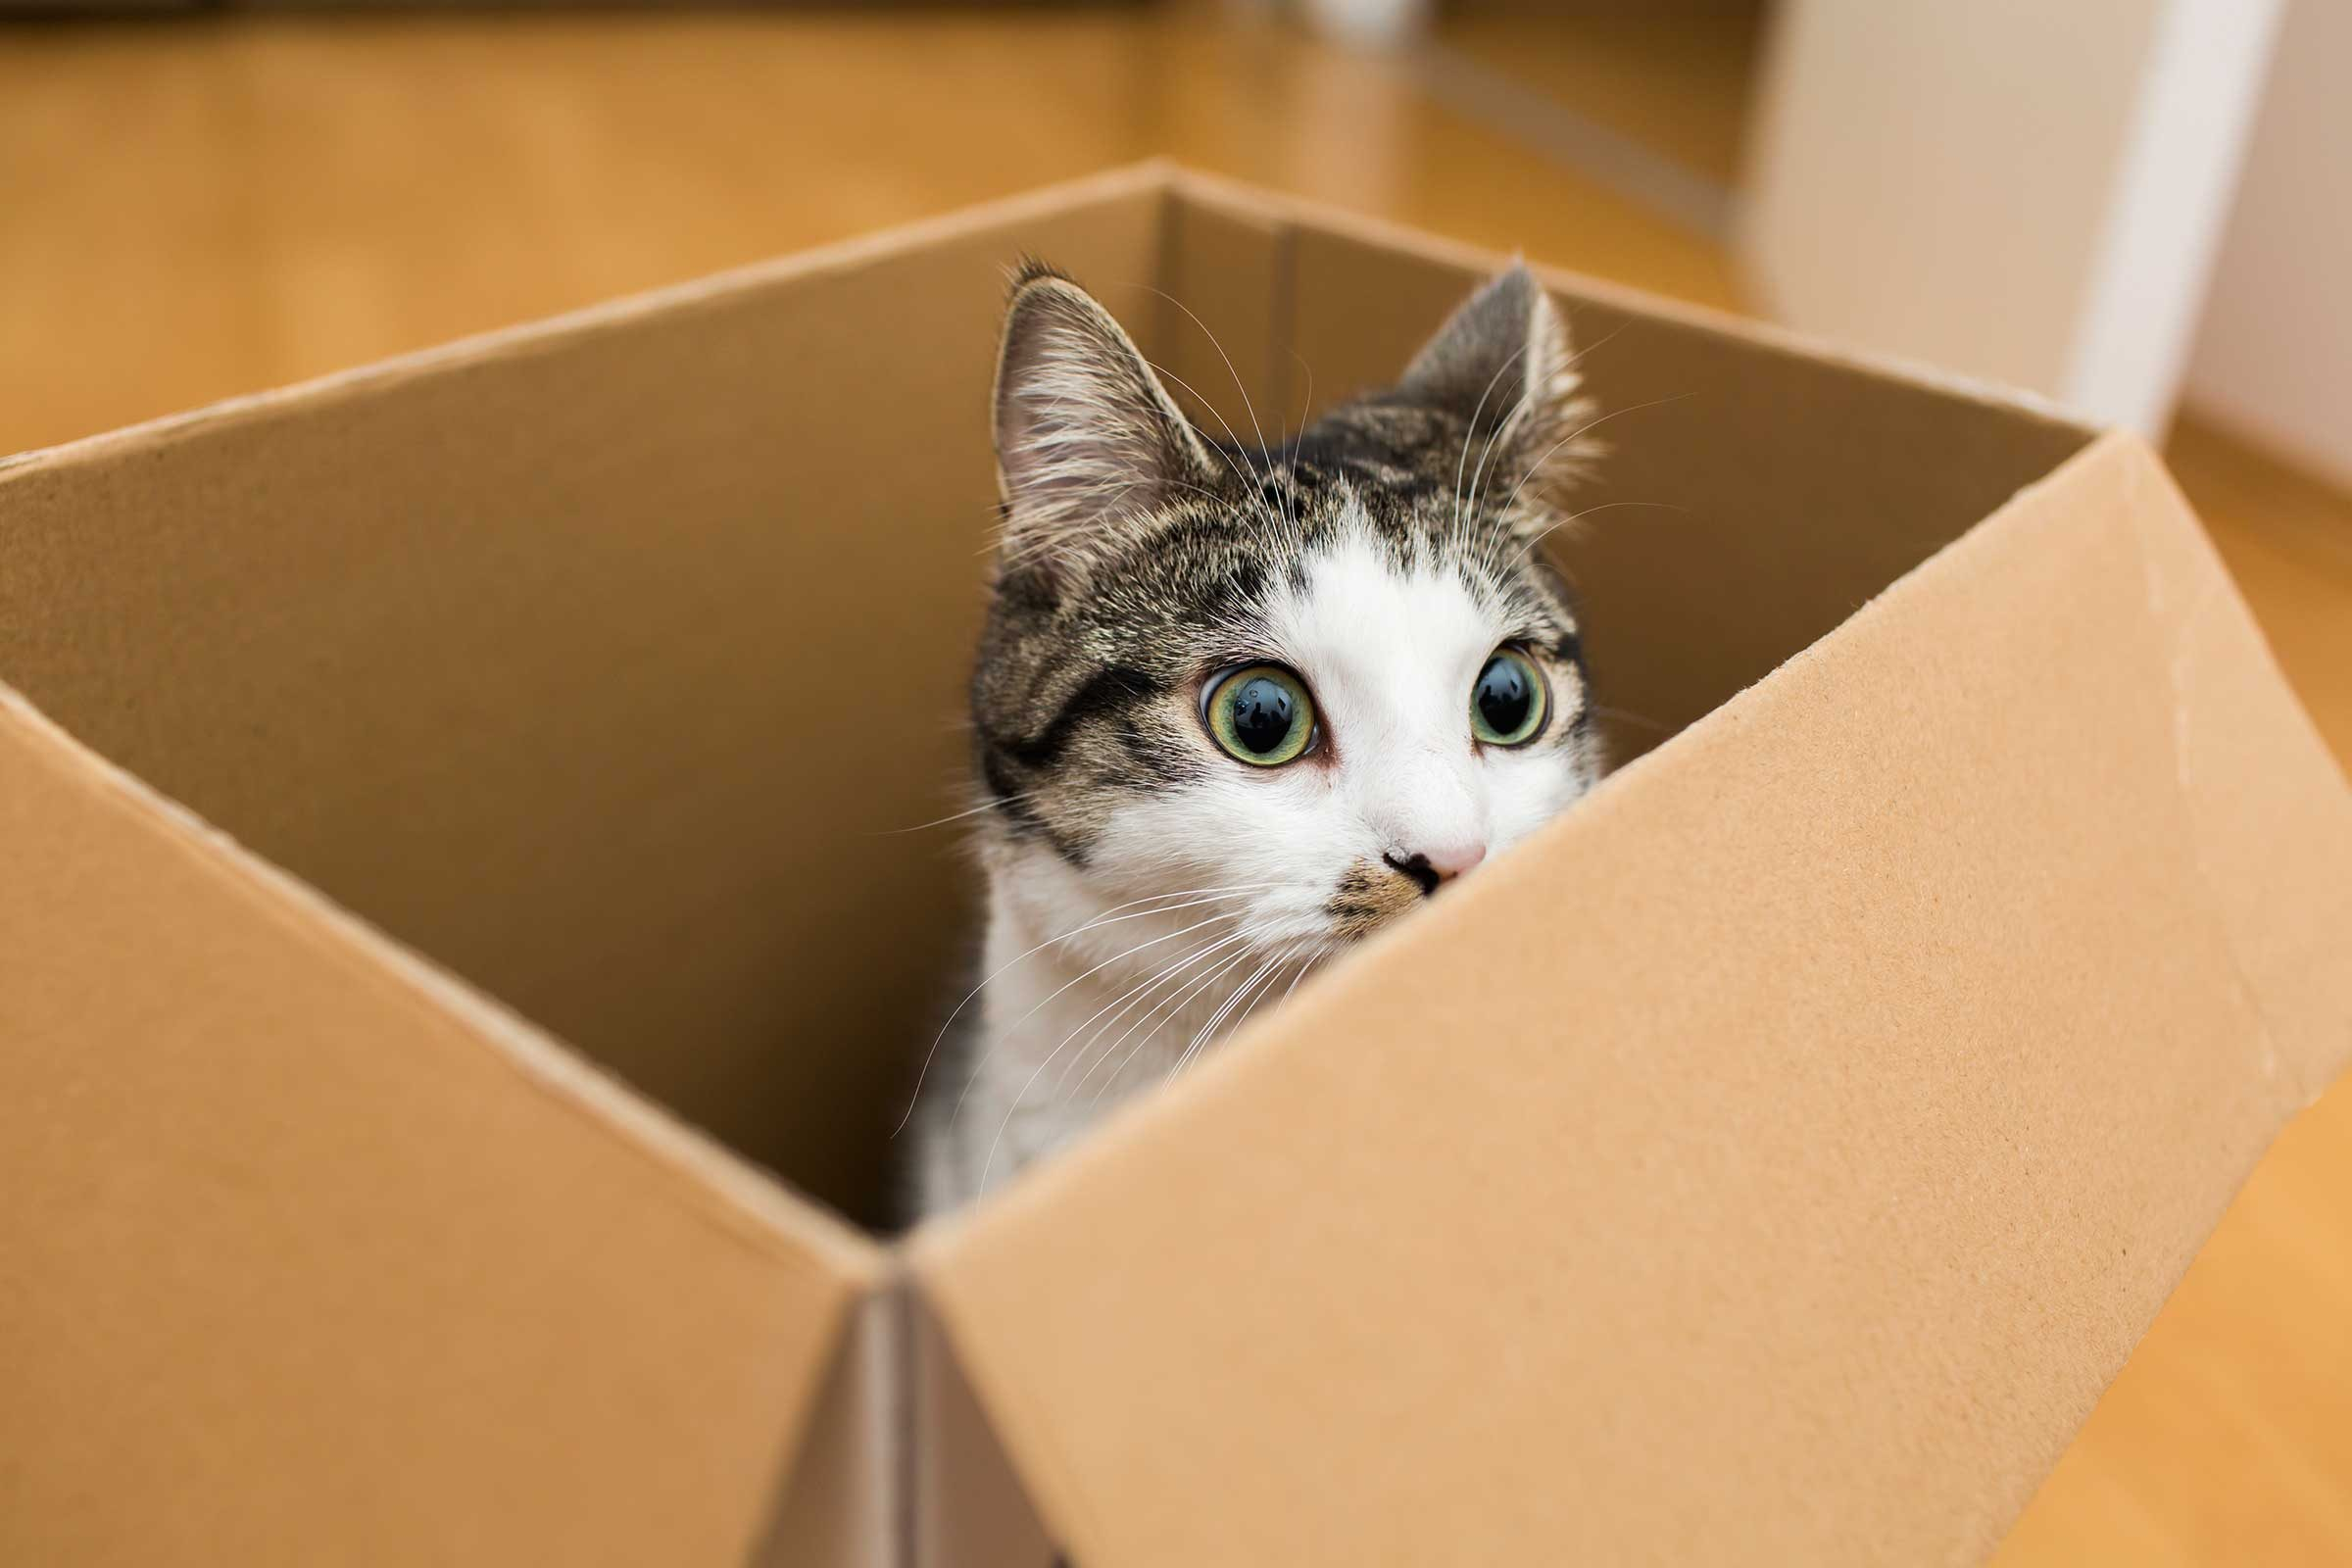 Why Cats Love Boxes According To Science